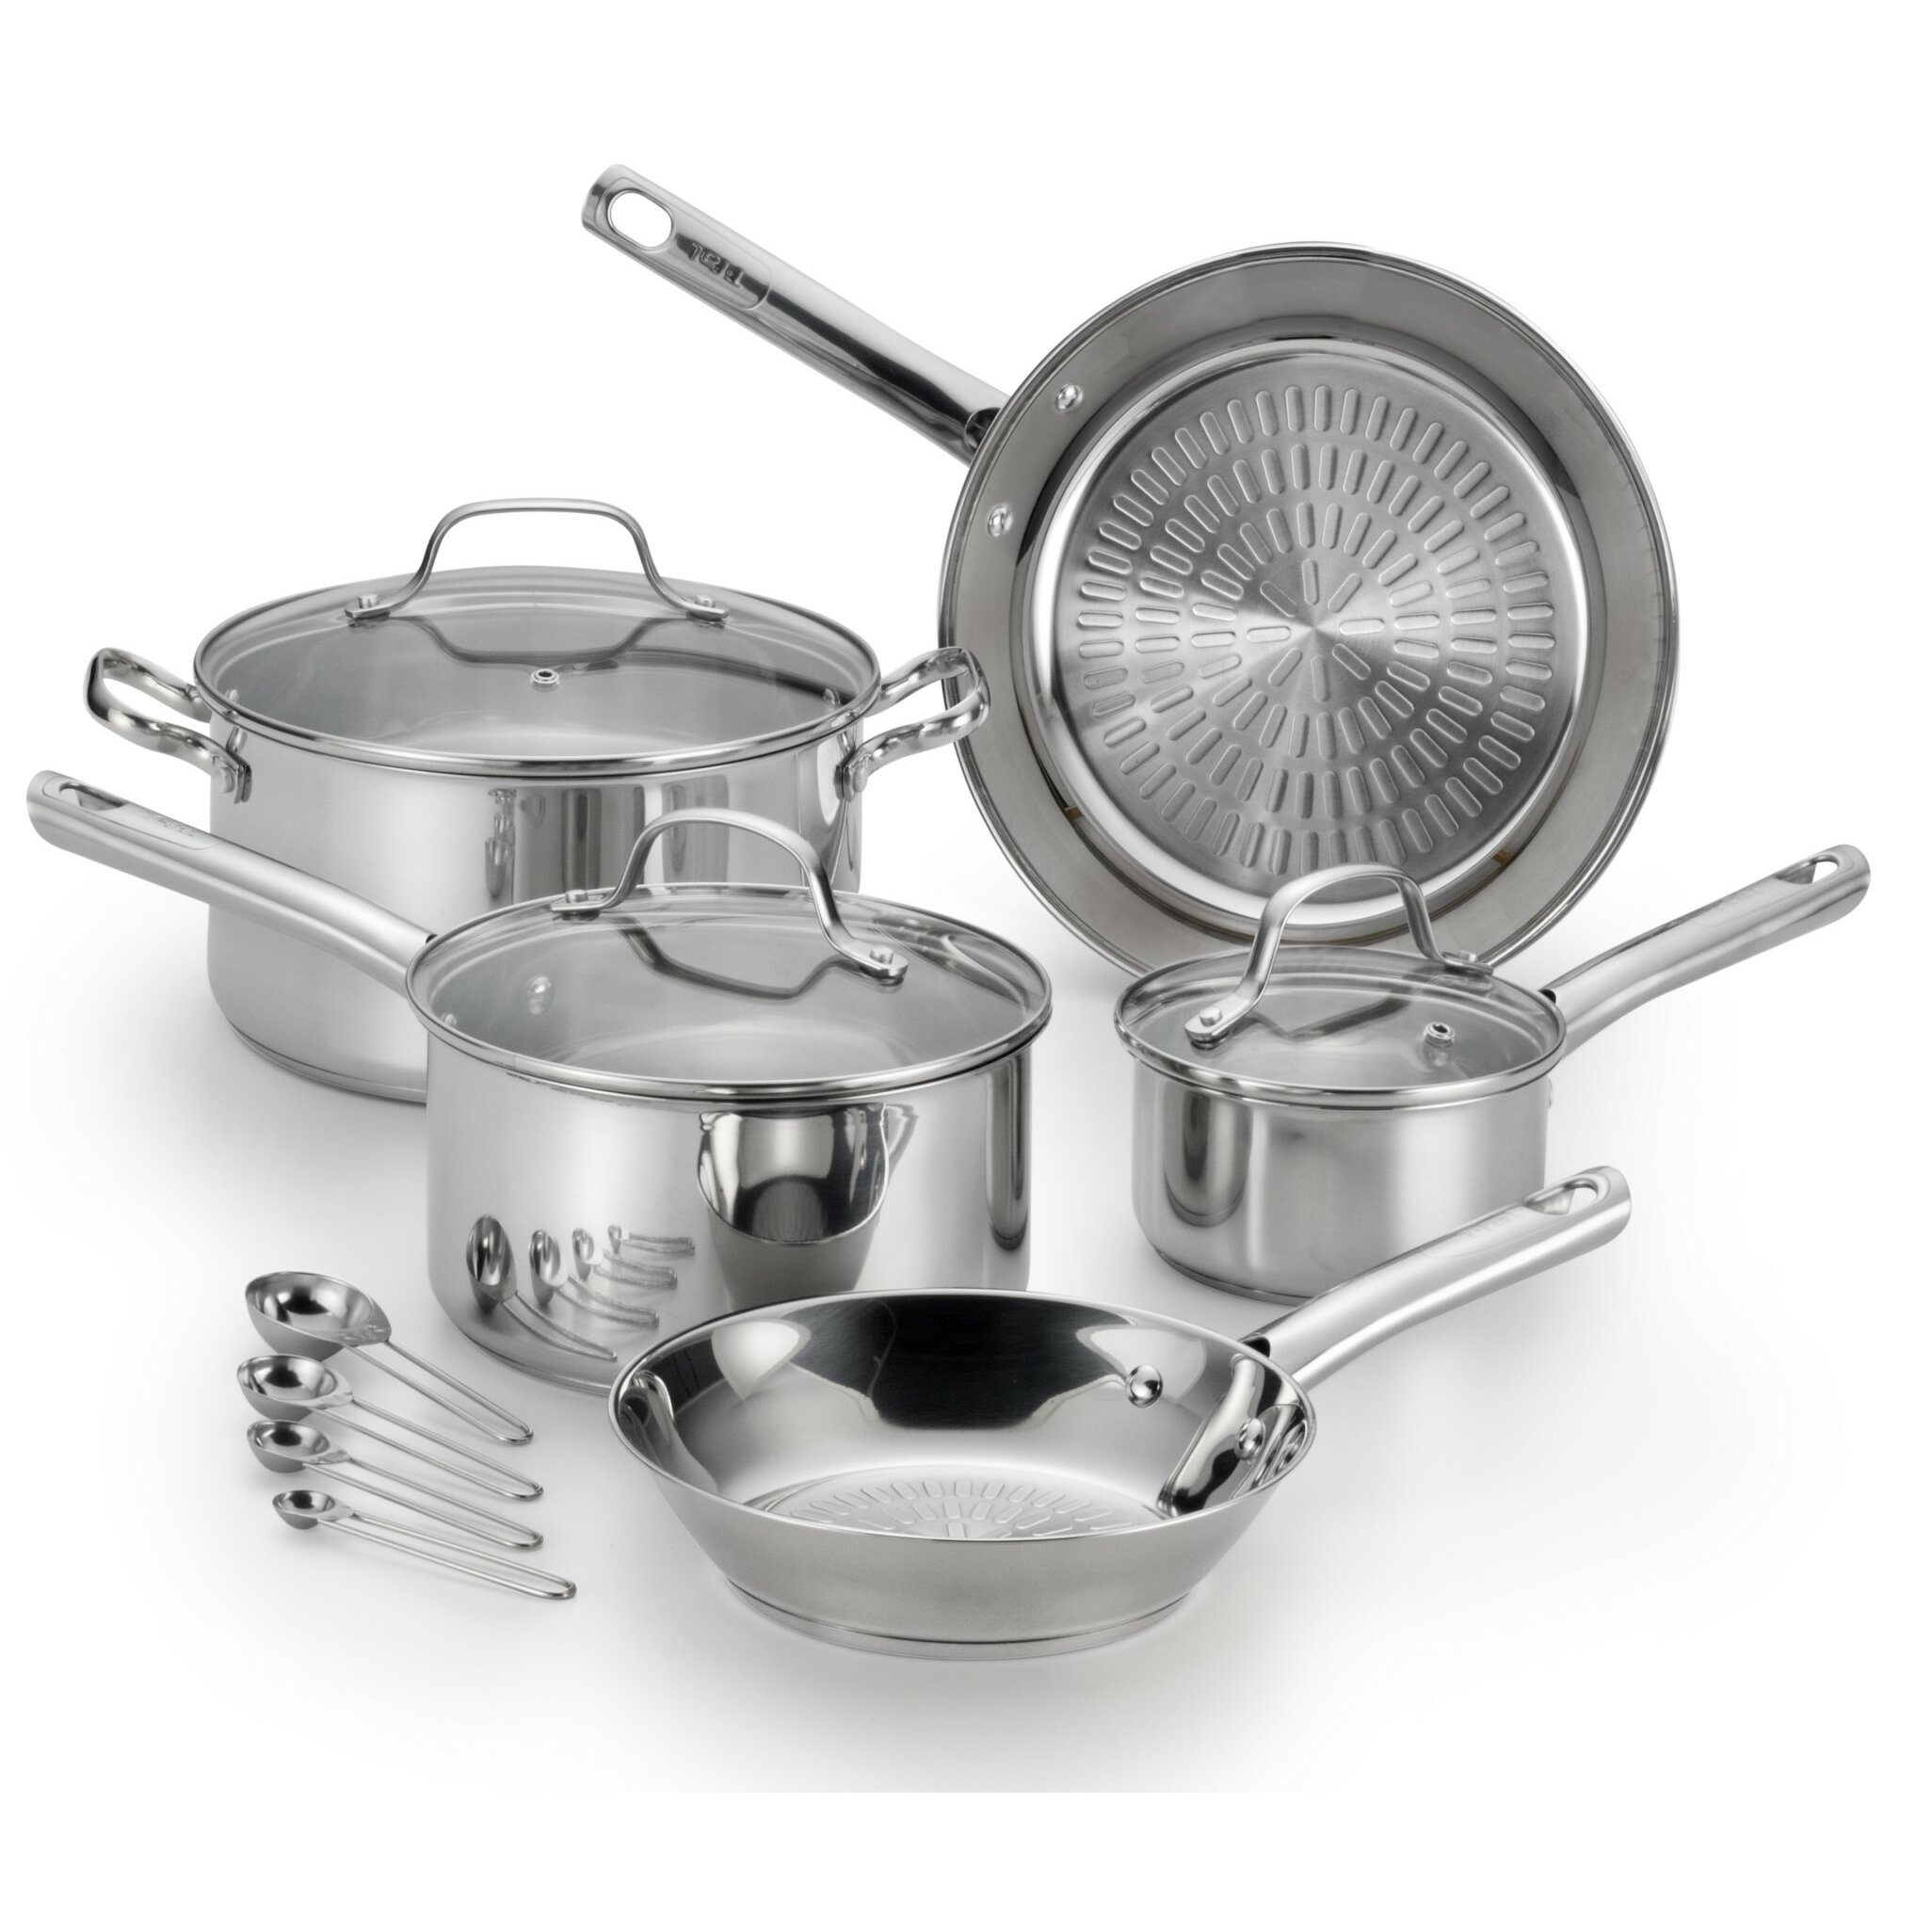 T Fal Performa Stainless Steel 12 Piece Cookware Set